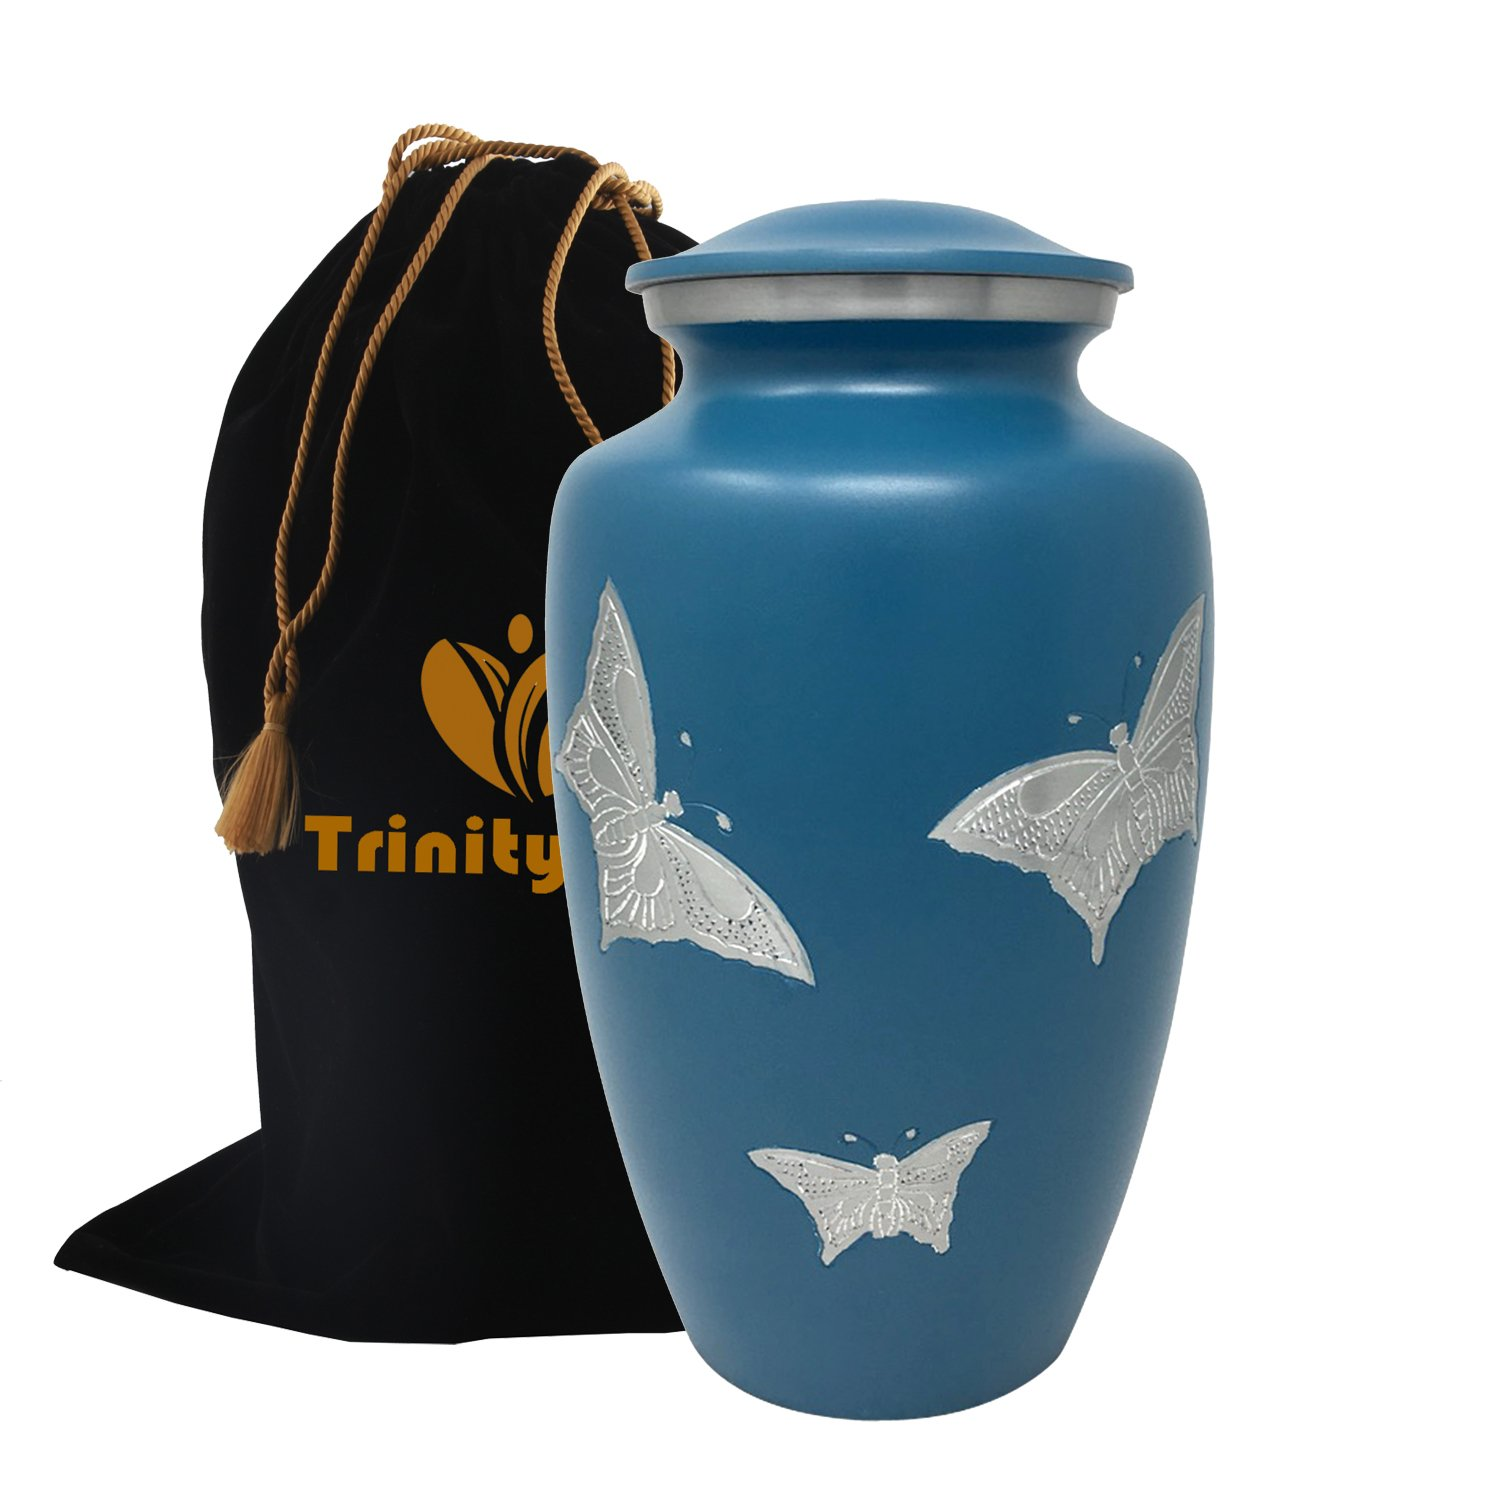 Classic Silver Butterflies Cremation Urn - 100% Handcrafted Butterfly Adult Urn - Solid Metal Funeral Urn - Large Urn for Human Ashes - Great Urn Deal with Free Bag (Pearl Blue)